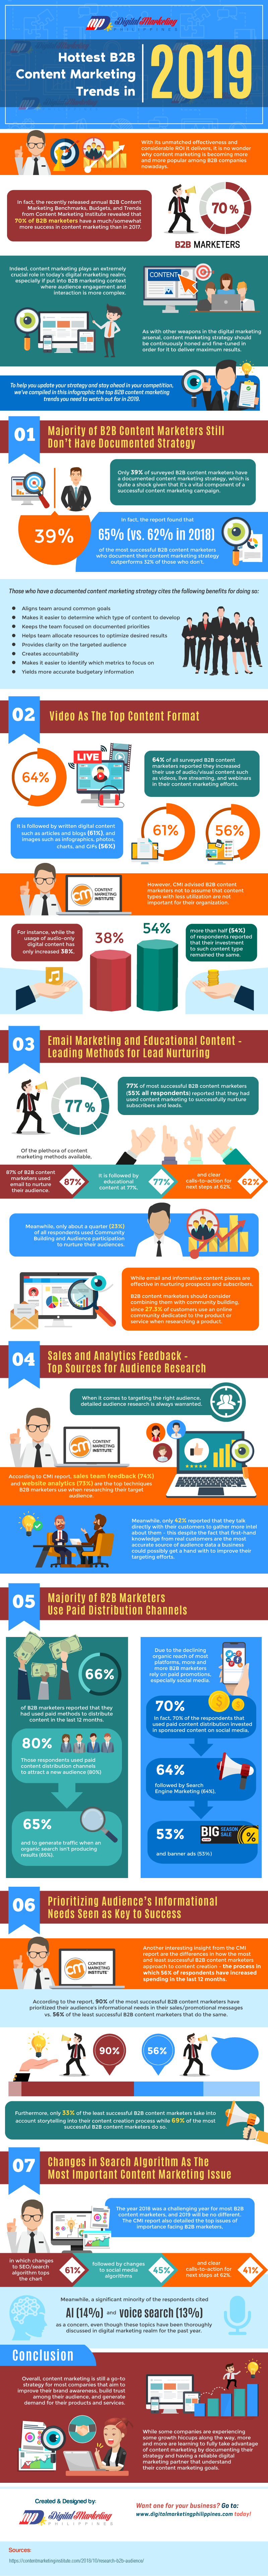 Hottest B2B Content Marketing Trends in 2019 #infographic